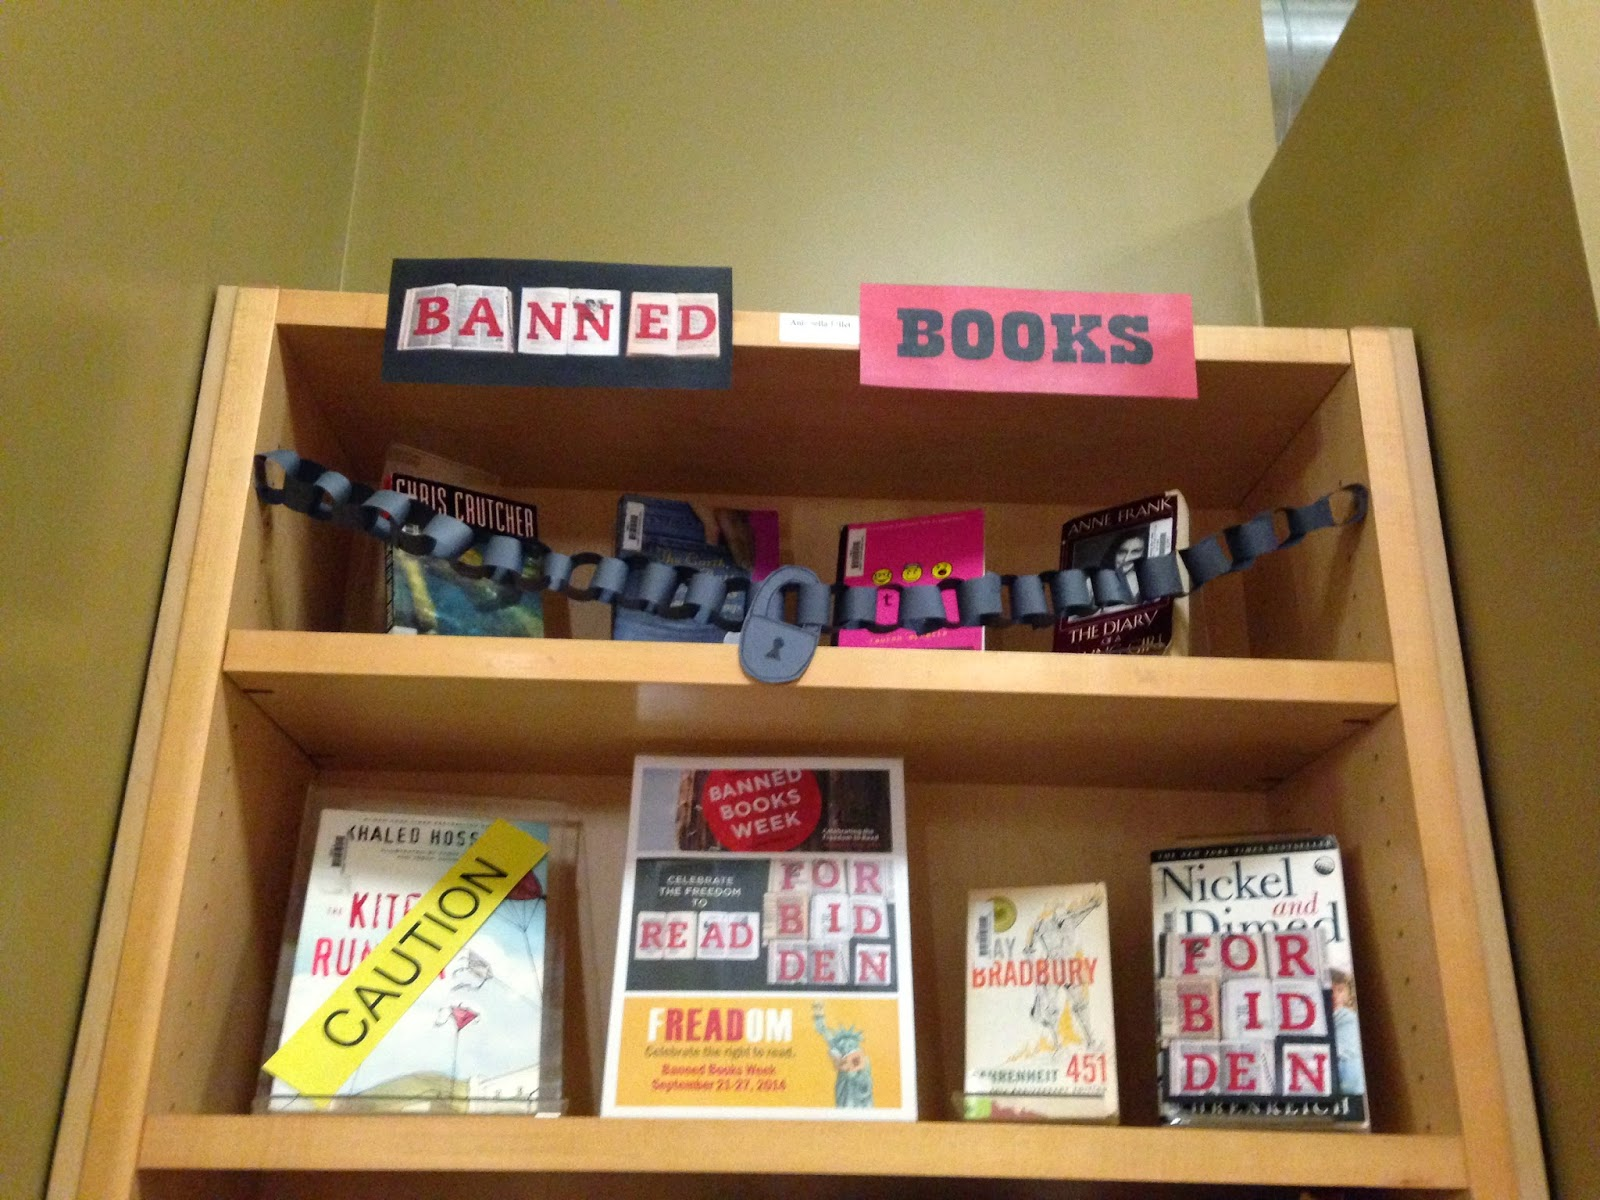 Librarian on Display September Banned Books Week